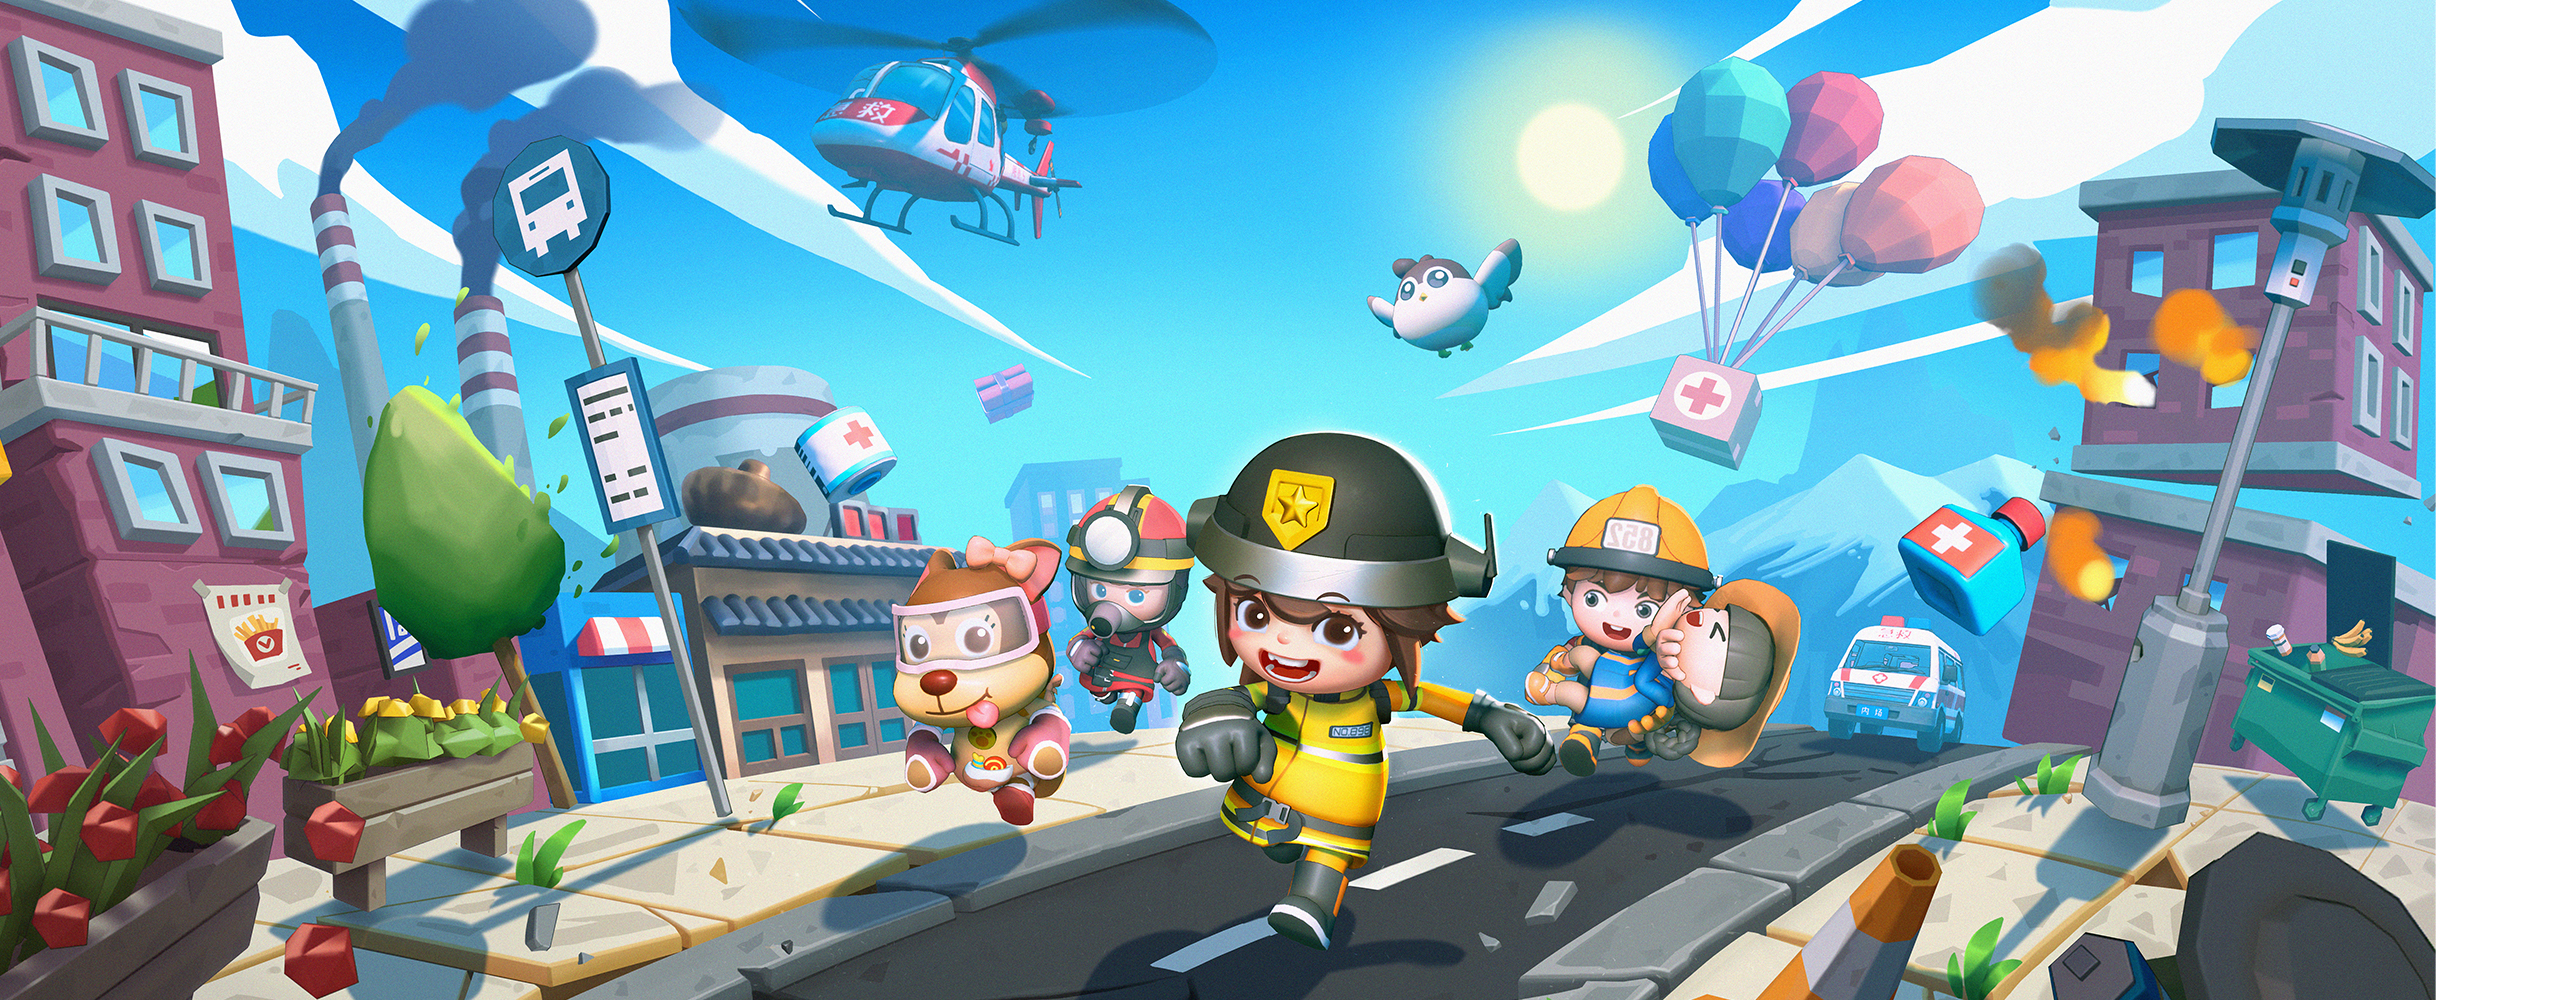 Introducing Rescue Party: Live! Coming to Steam this Fall!